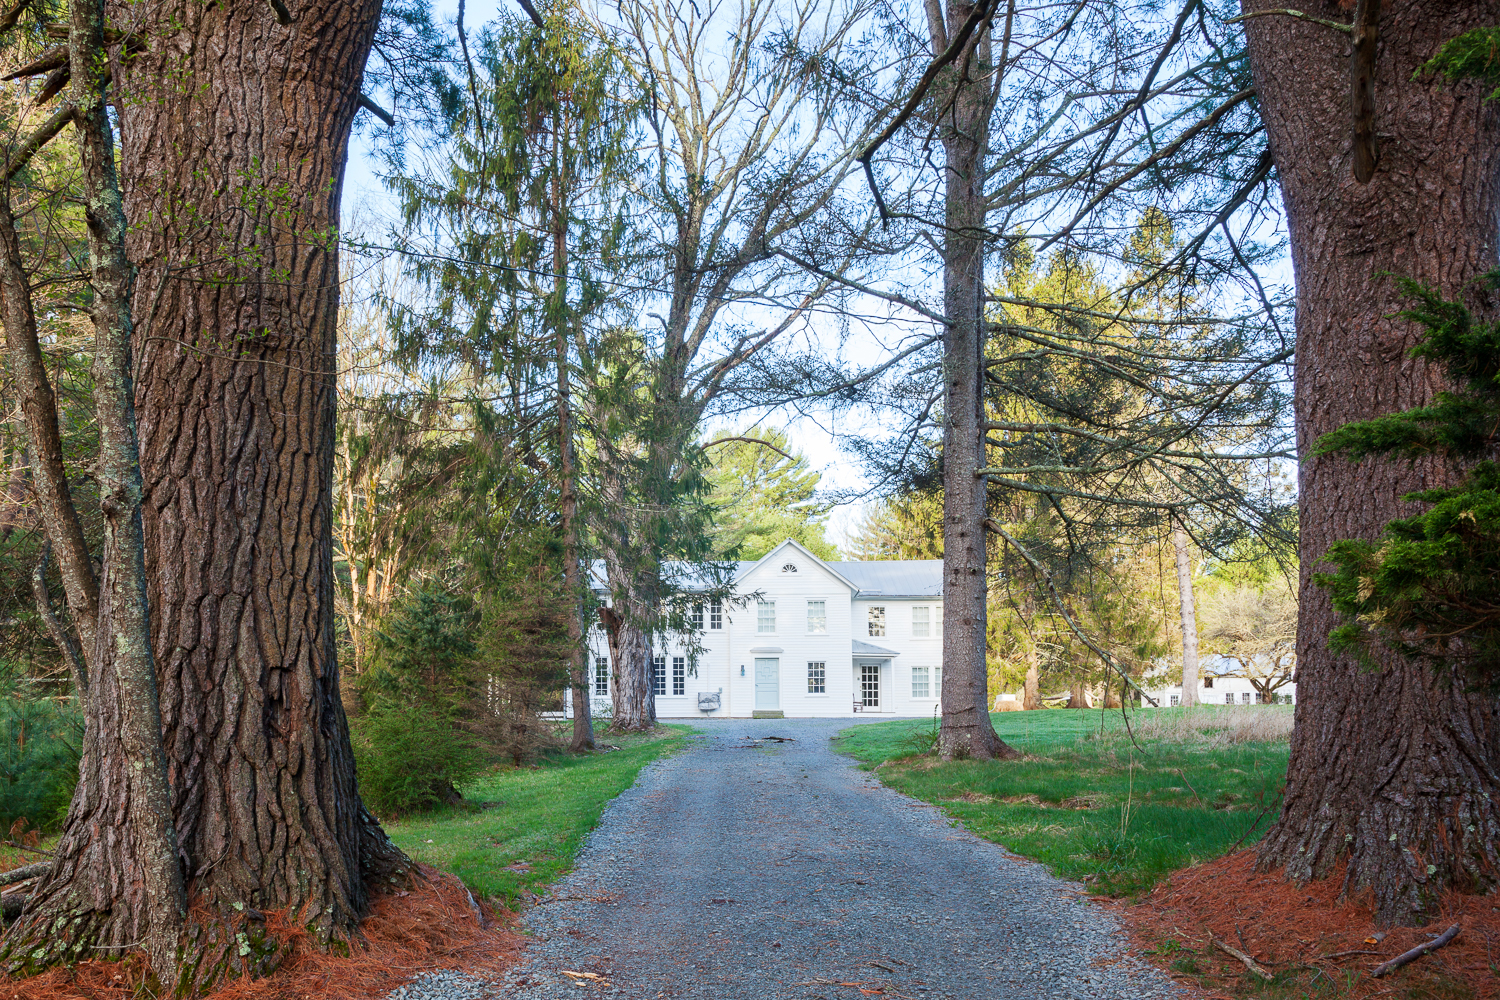 A long driveway leads to the historic Floating Farmhouse, a Catskills vacation rental and wedding venue in upstate New York.